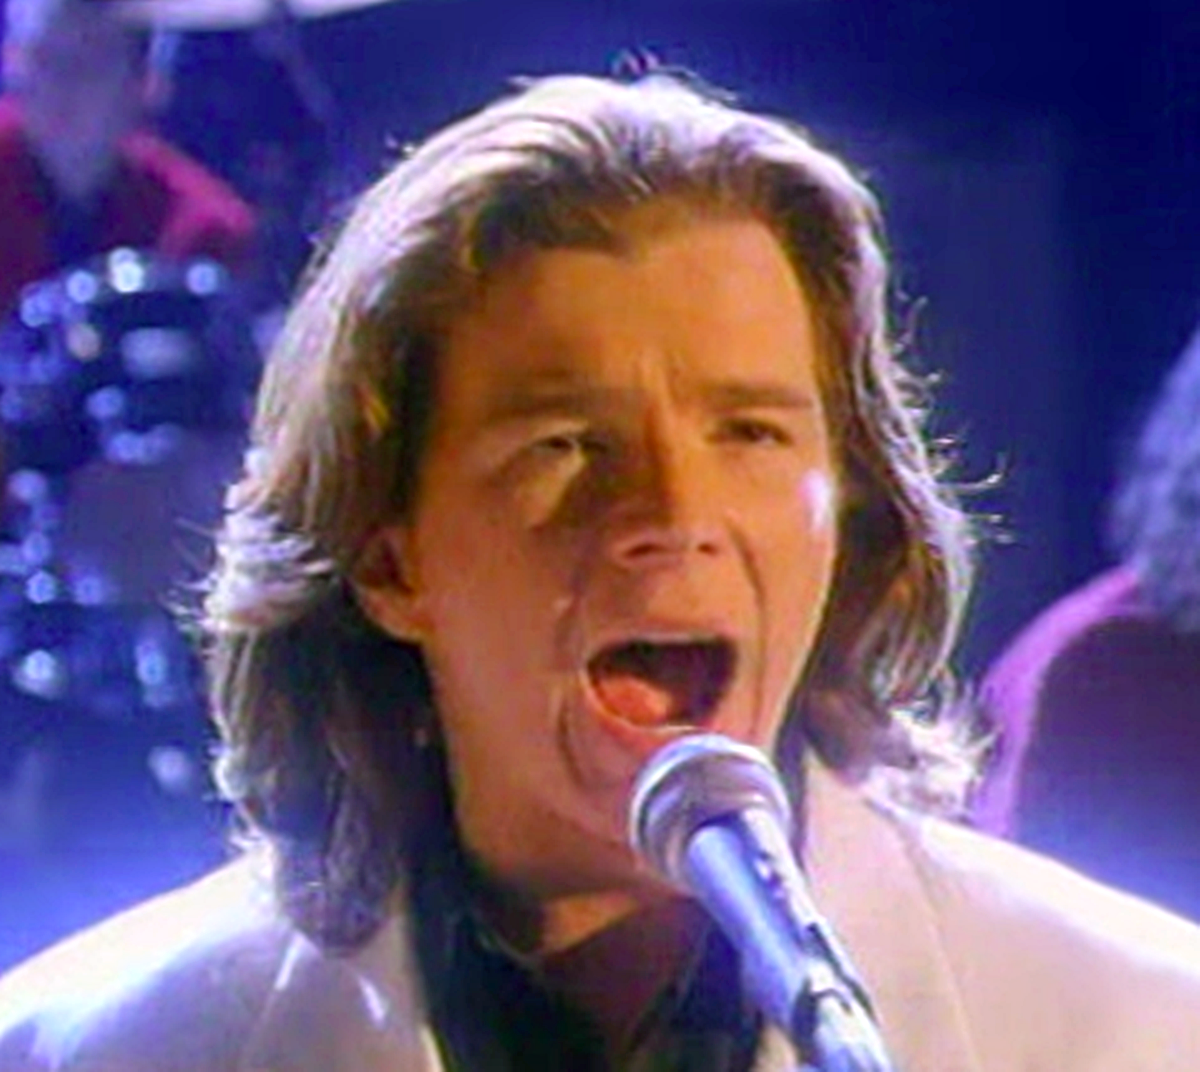 Astley performing live on stage